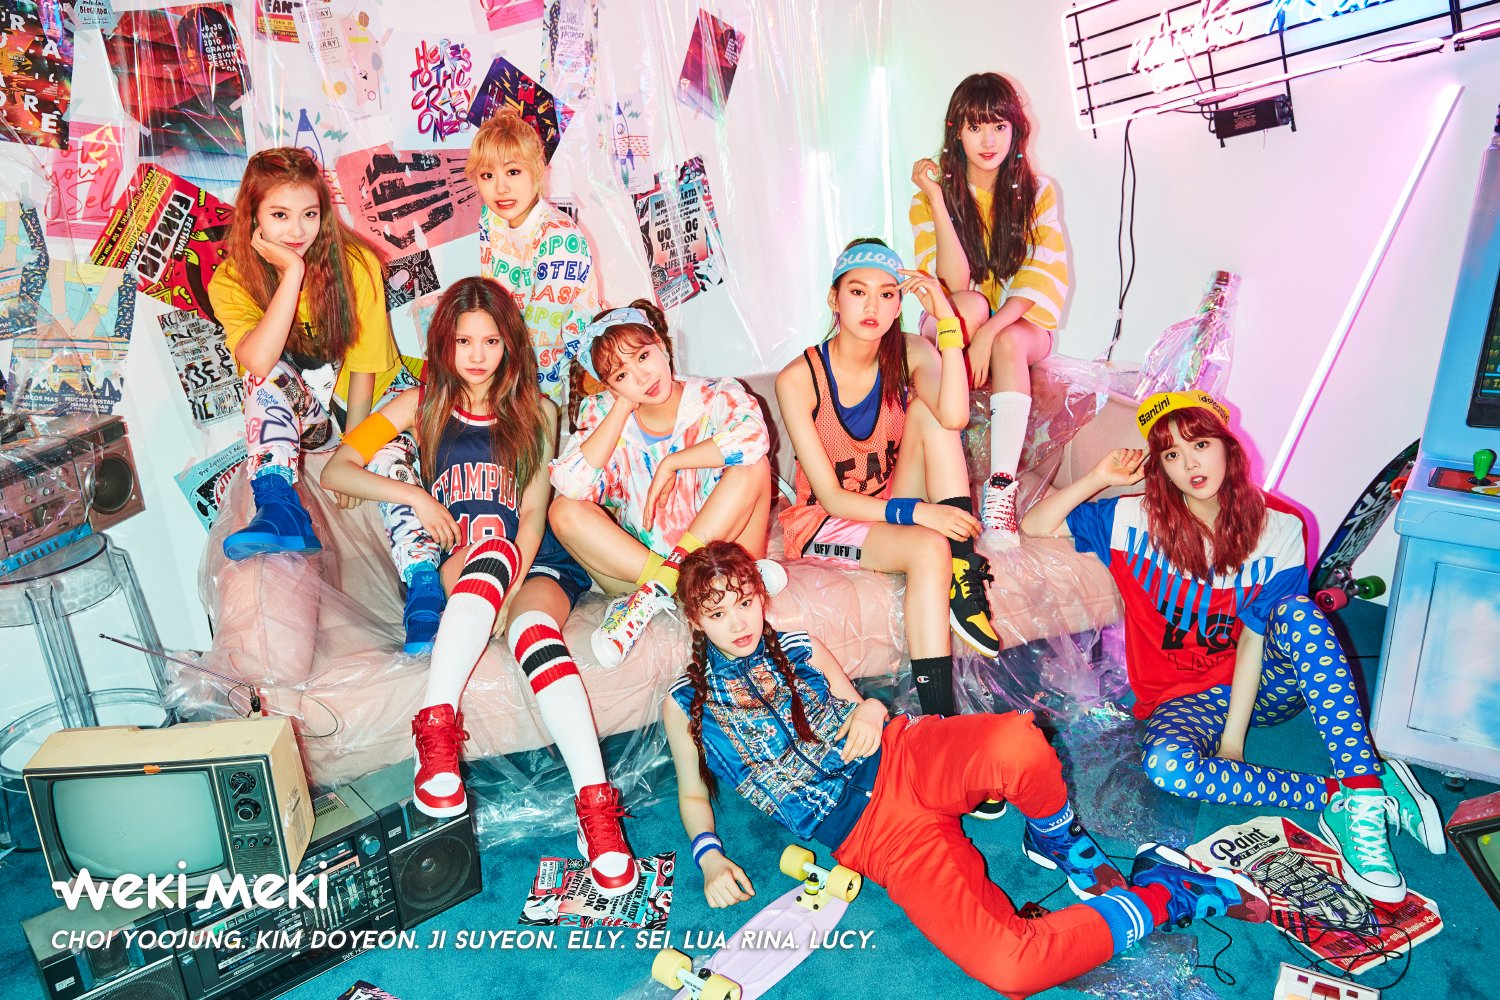 Here's What You Need To Know To Get Hyped For Weki Meki's Debut